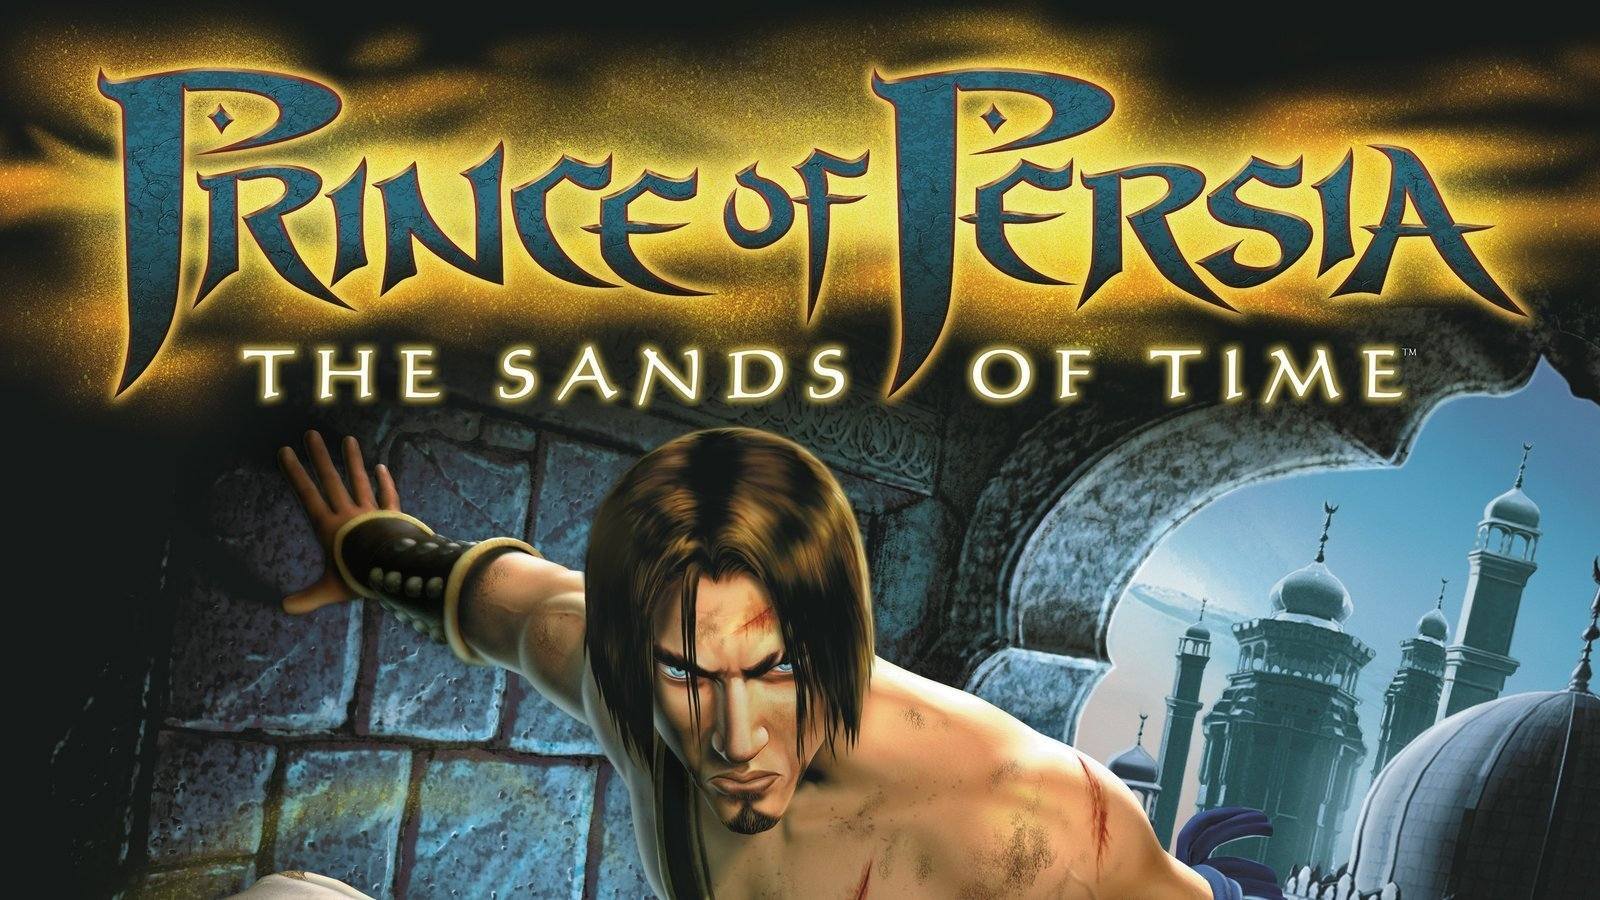 Petition Remaster Prince Of Persia Petition Change Org